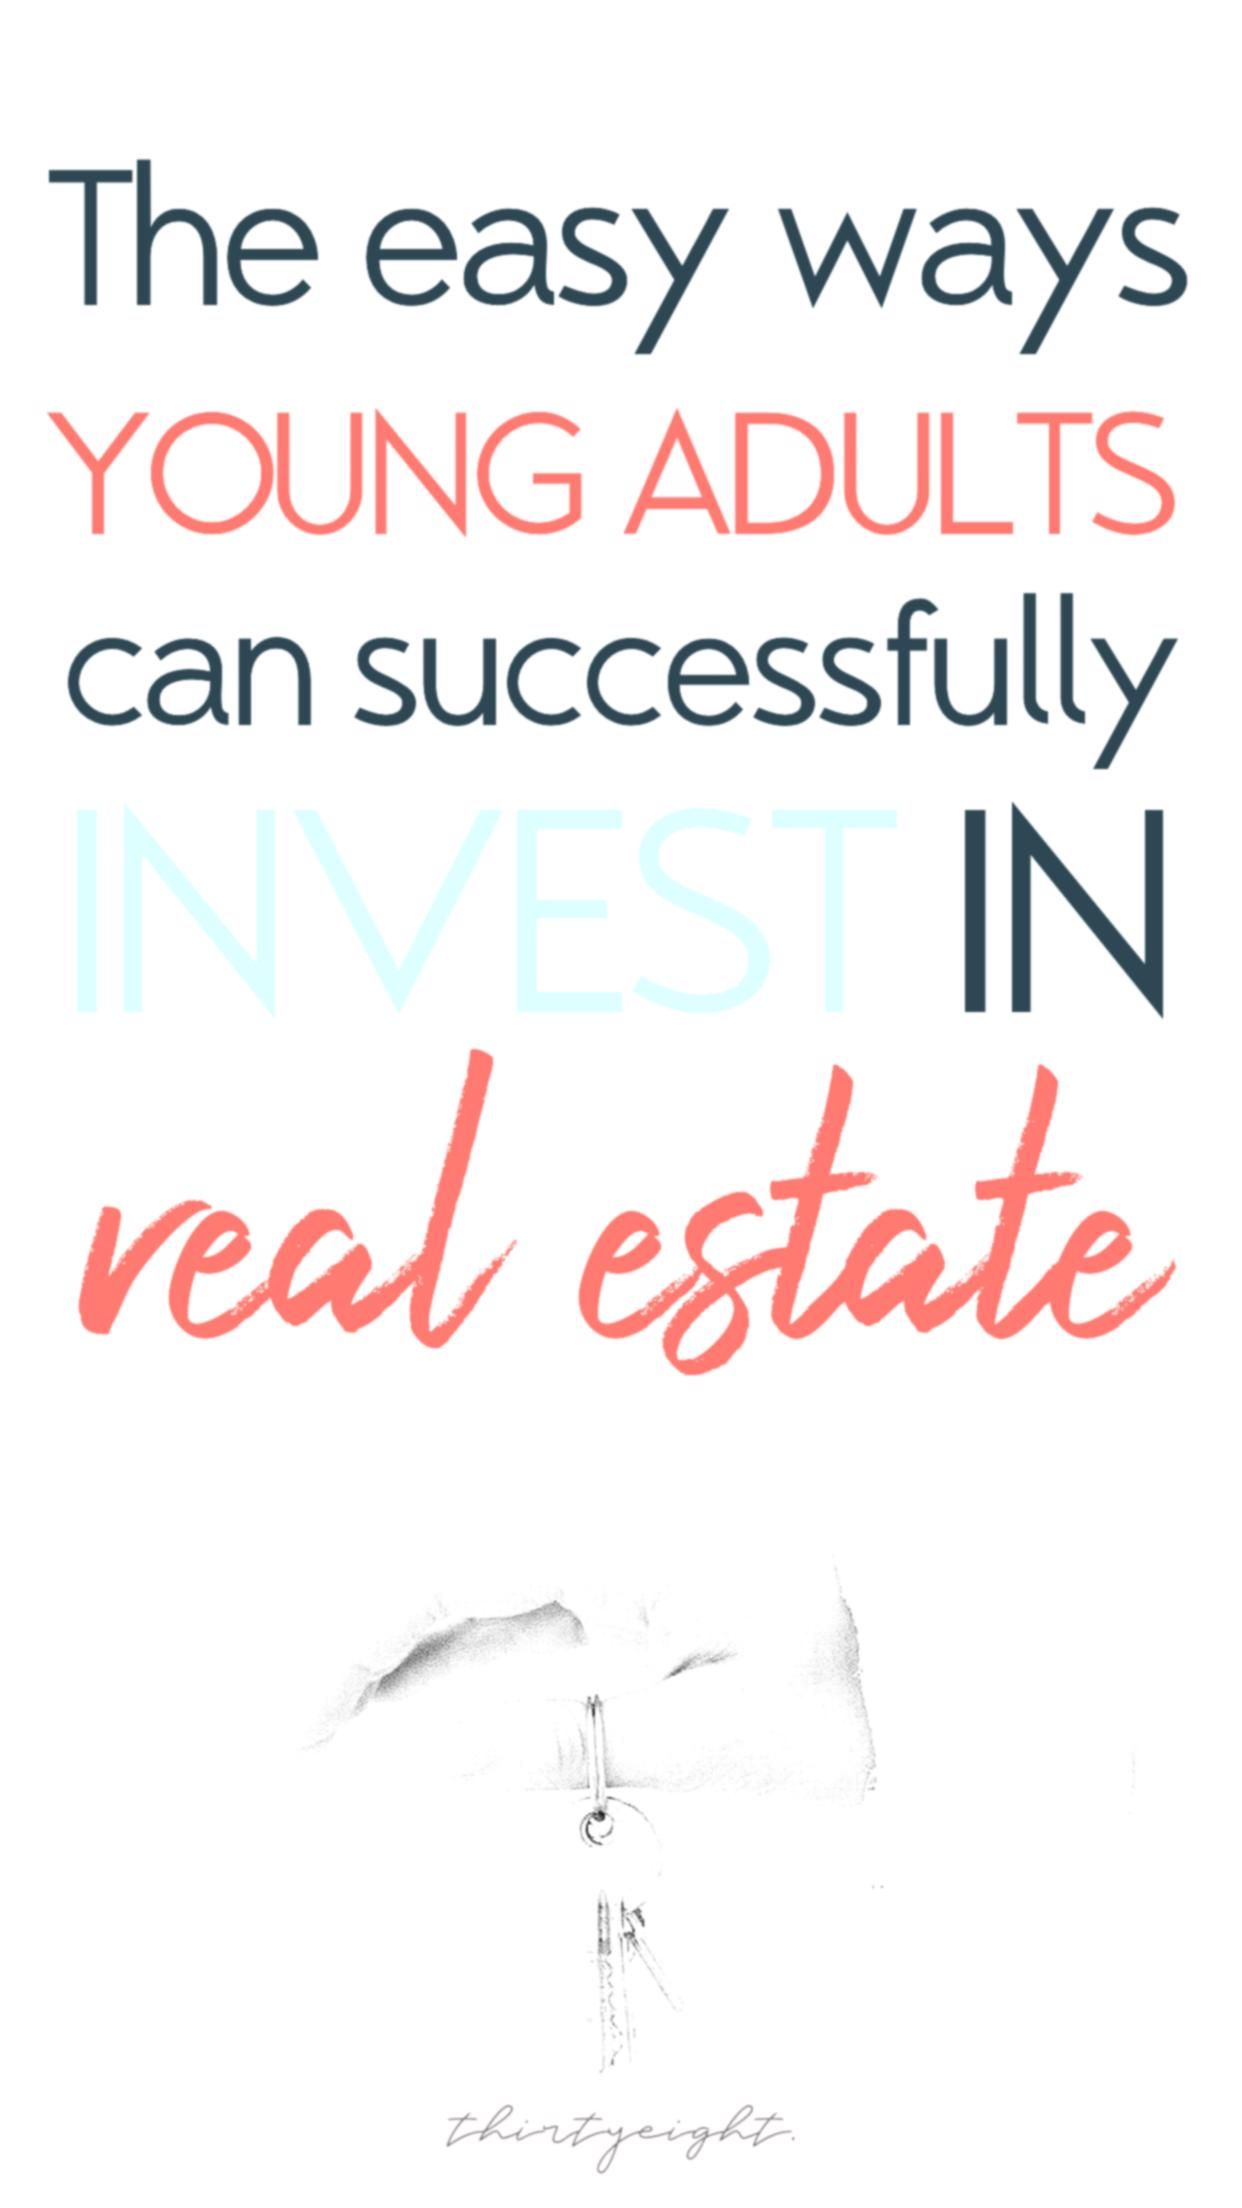 Real estate investing how to | real estate investing For Beginners | real Estate properties for beginners | investing tips for beginners | investing for millennials | how to invest millennials #realestatetips